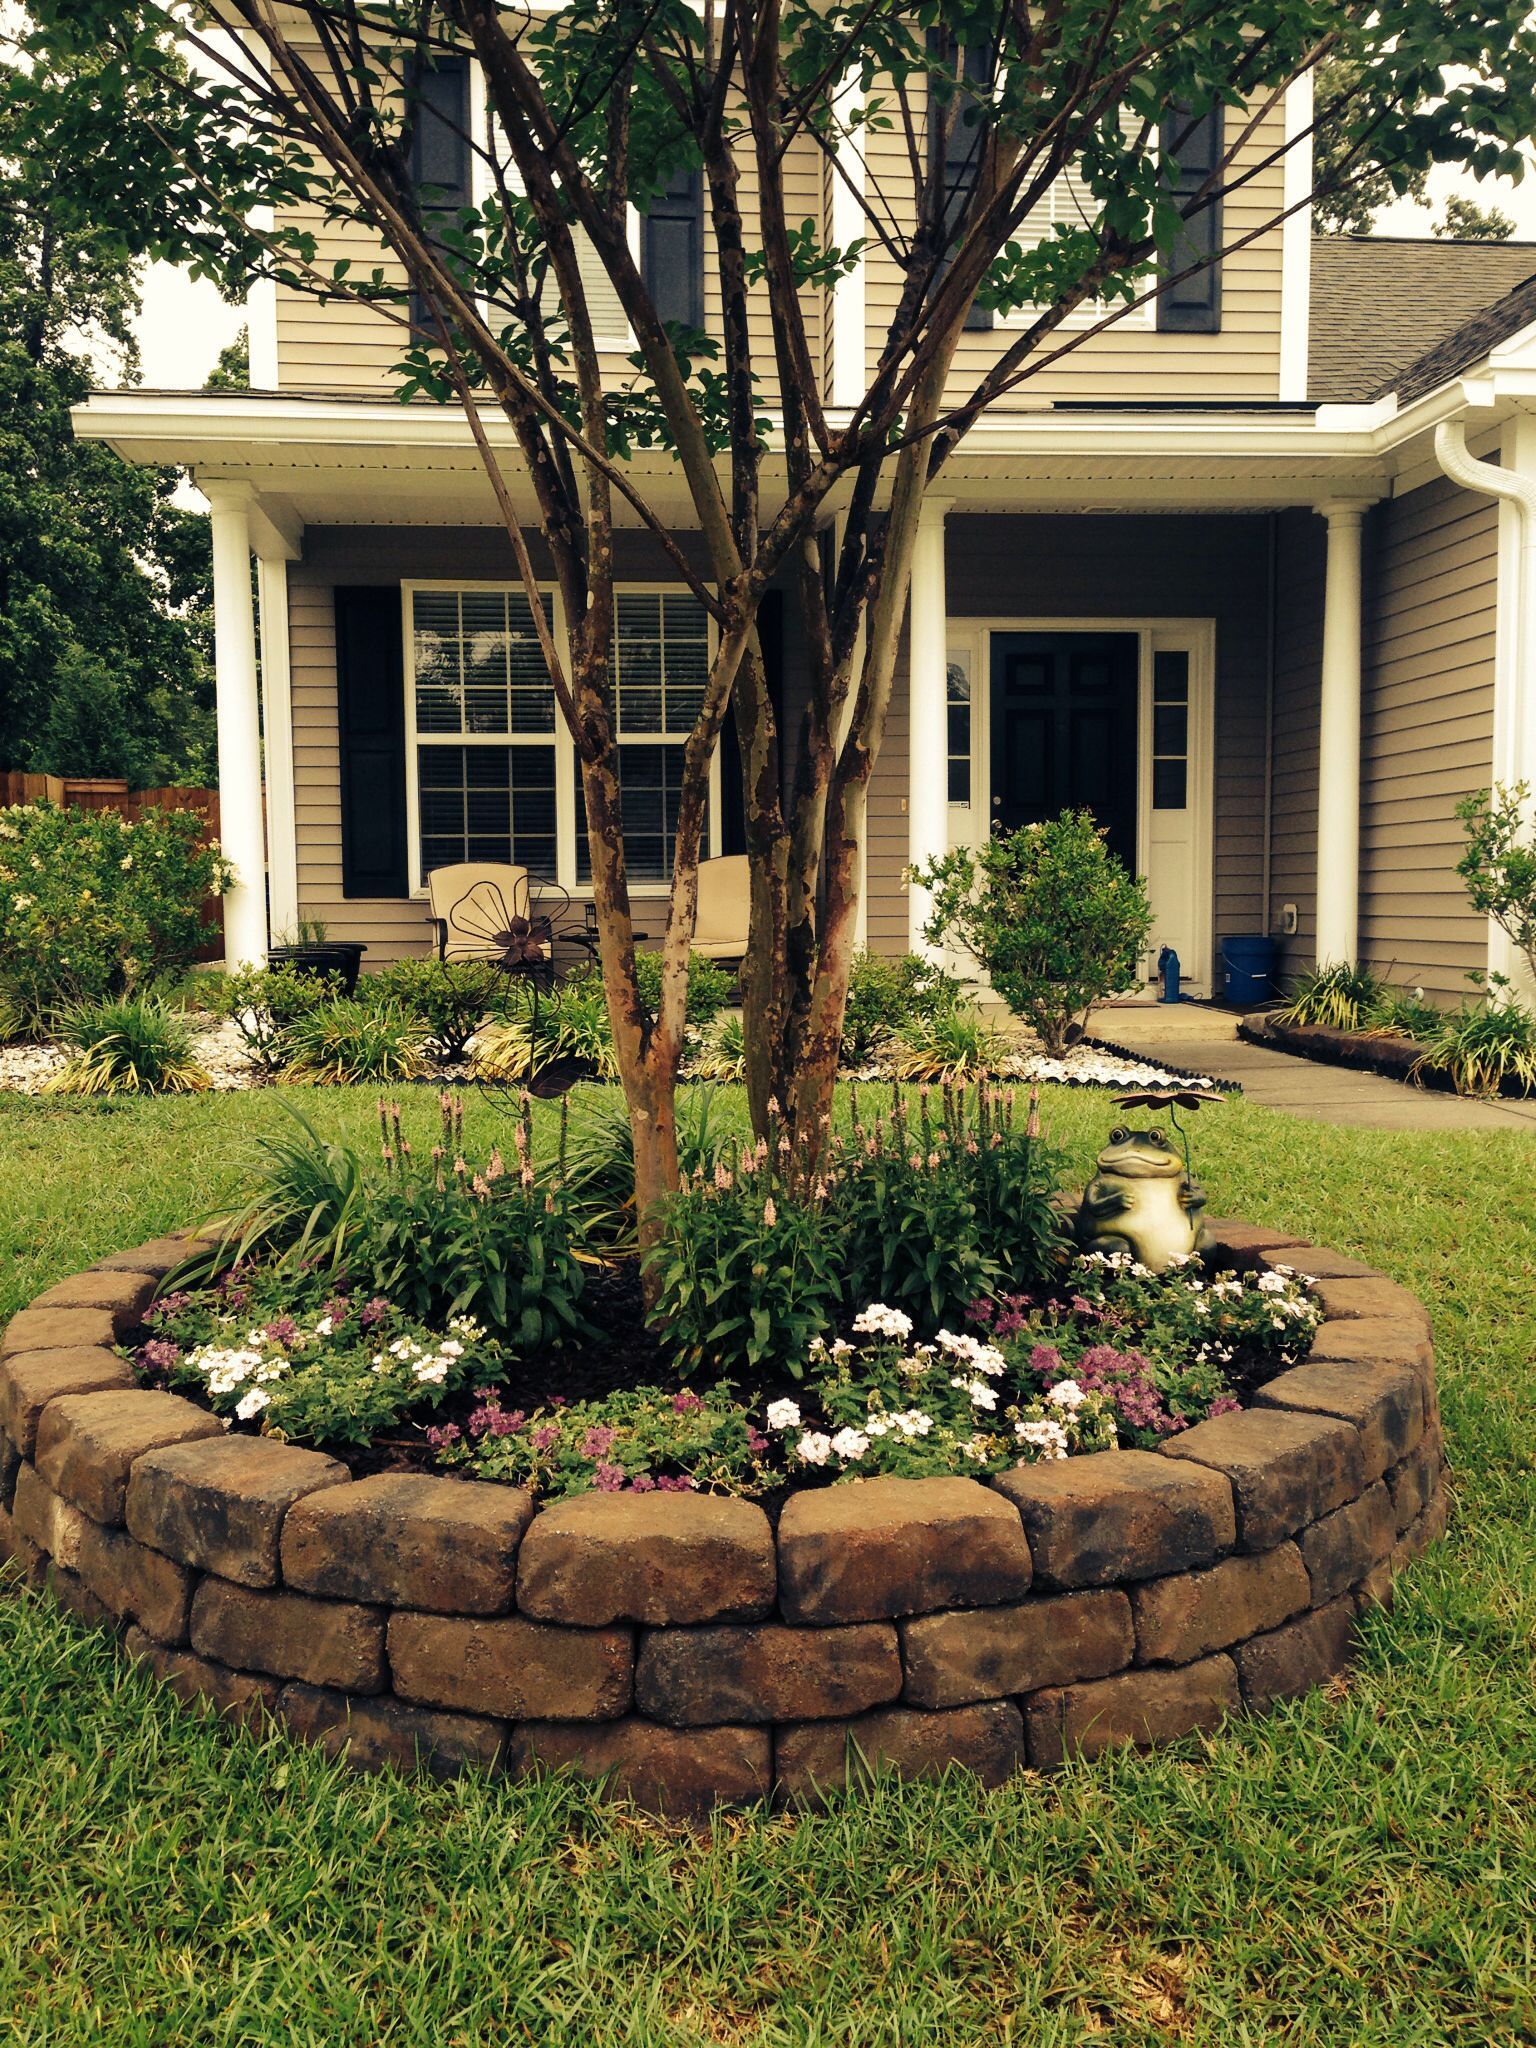 Flower Garden Ideas Around Tree front yard landscape project - good idea to add some pizzazz